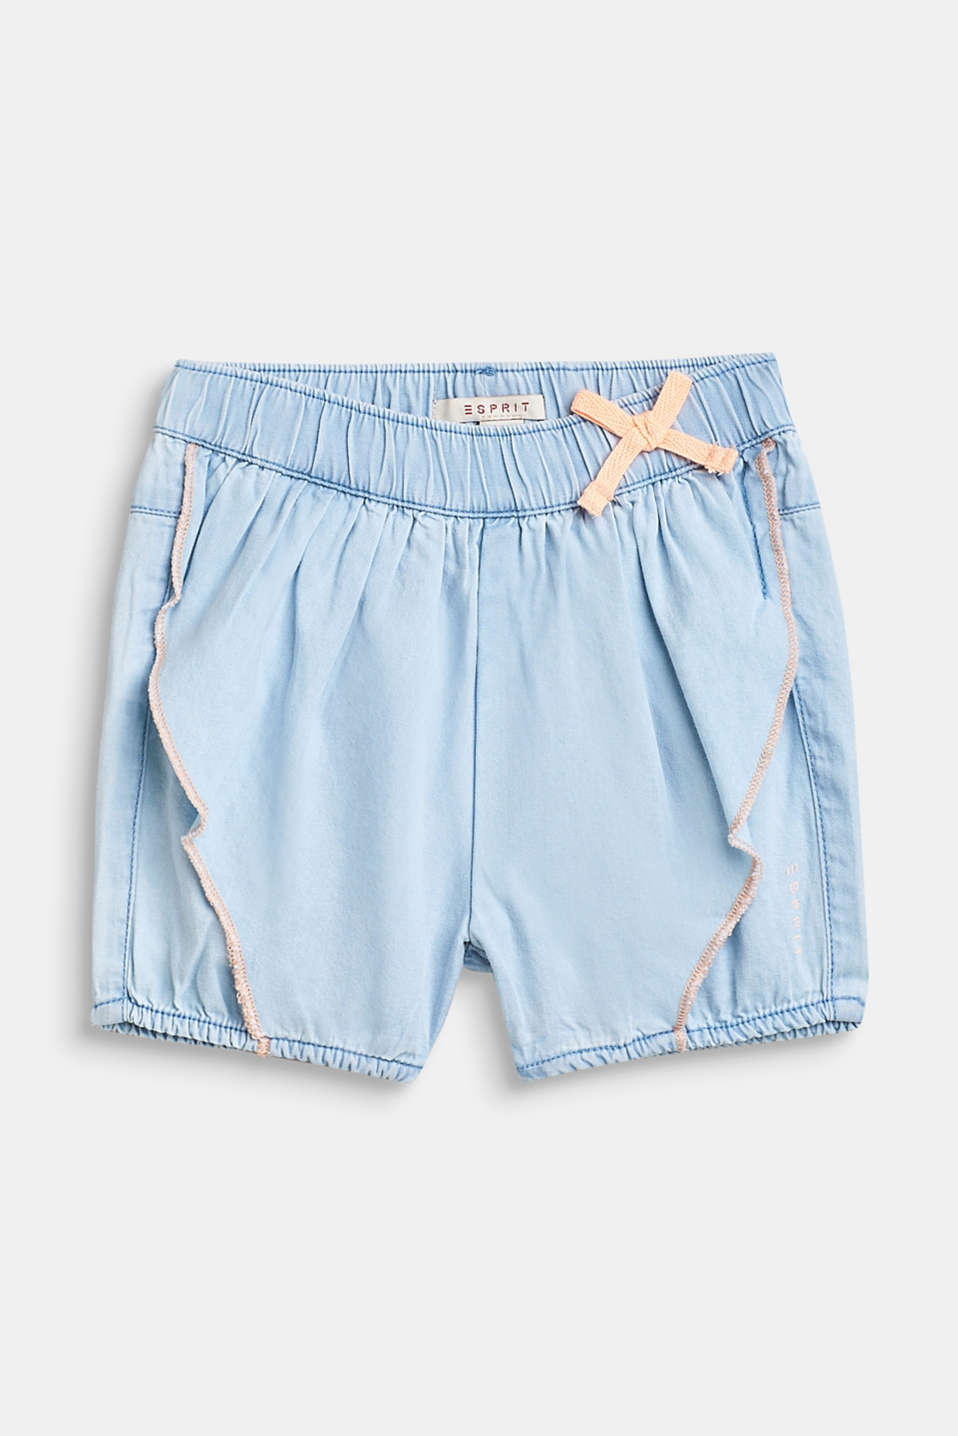 Esprit - Denim shorts with a flounce detail, 100% cotton